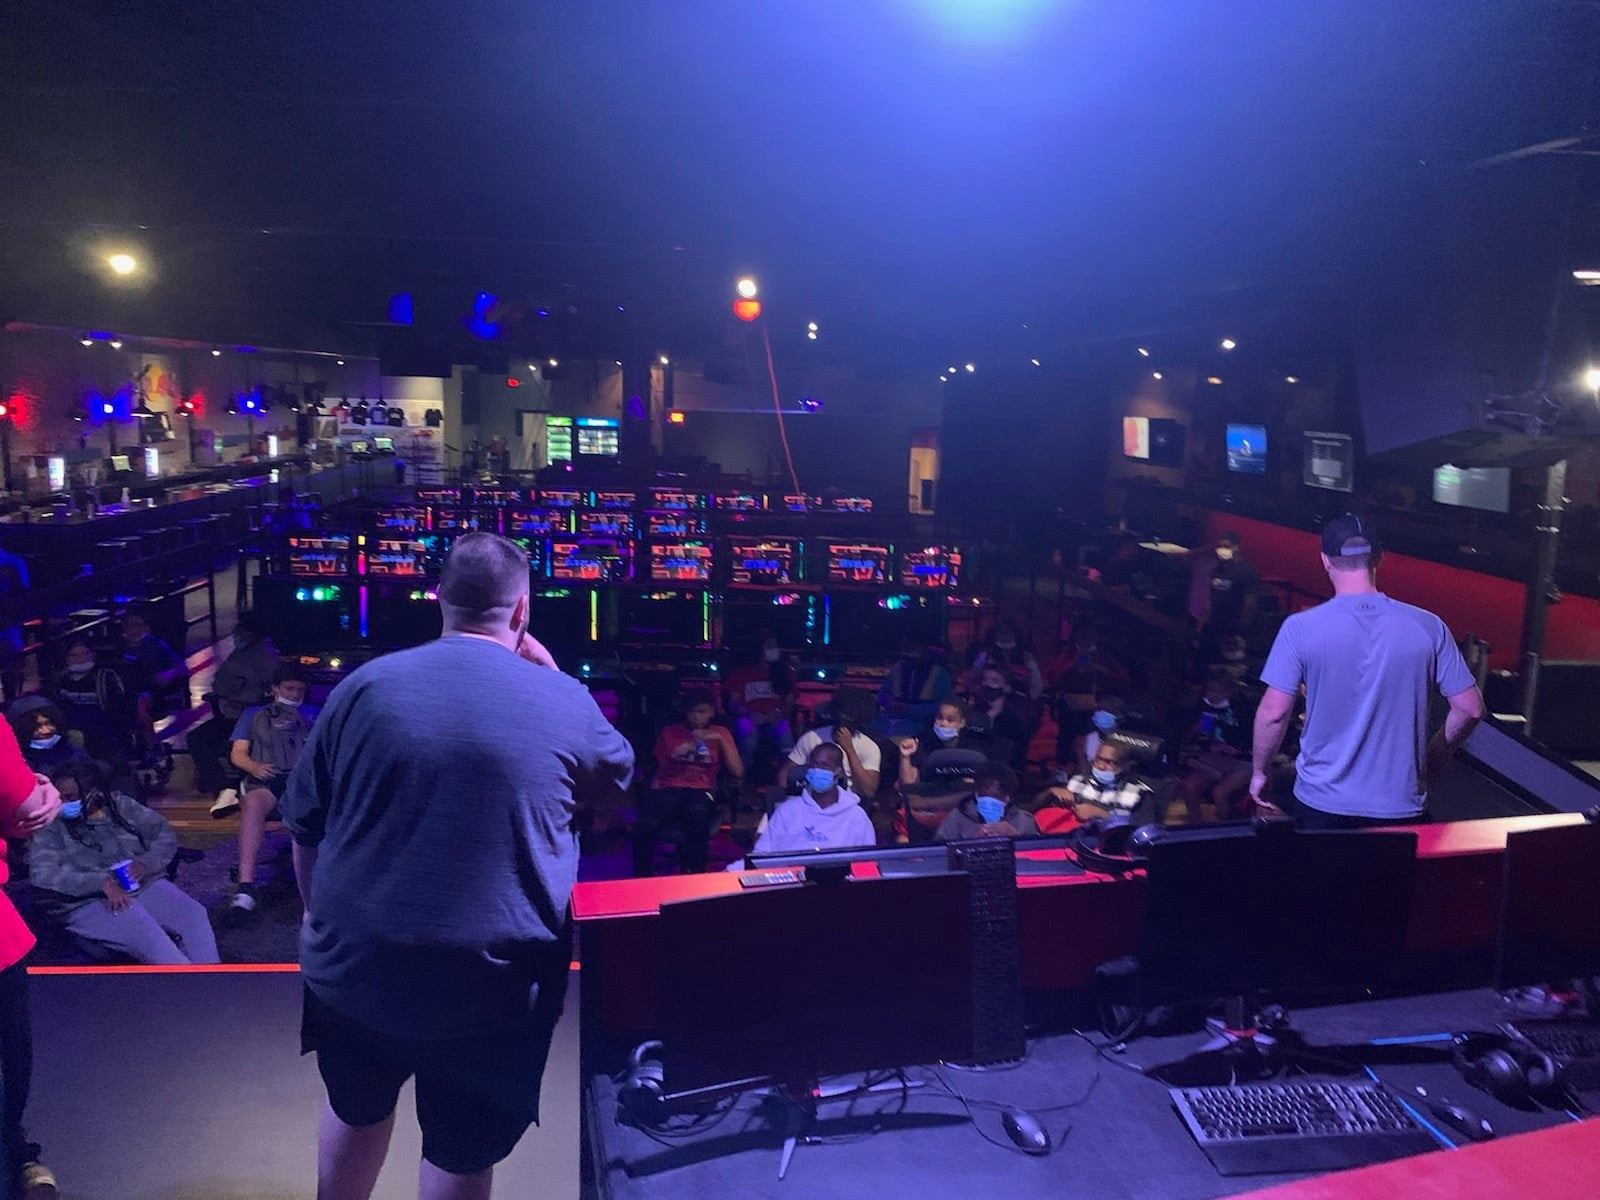 Just one of the many esports events in LEVELUP Arena